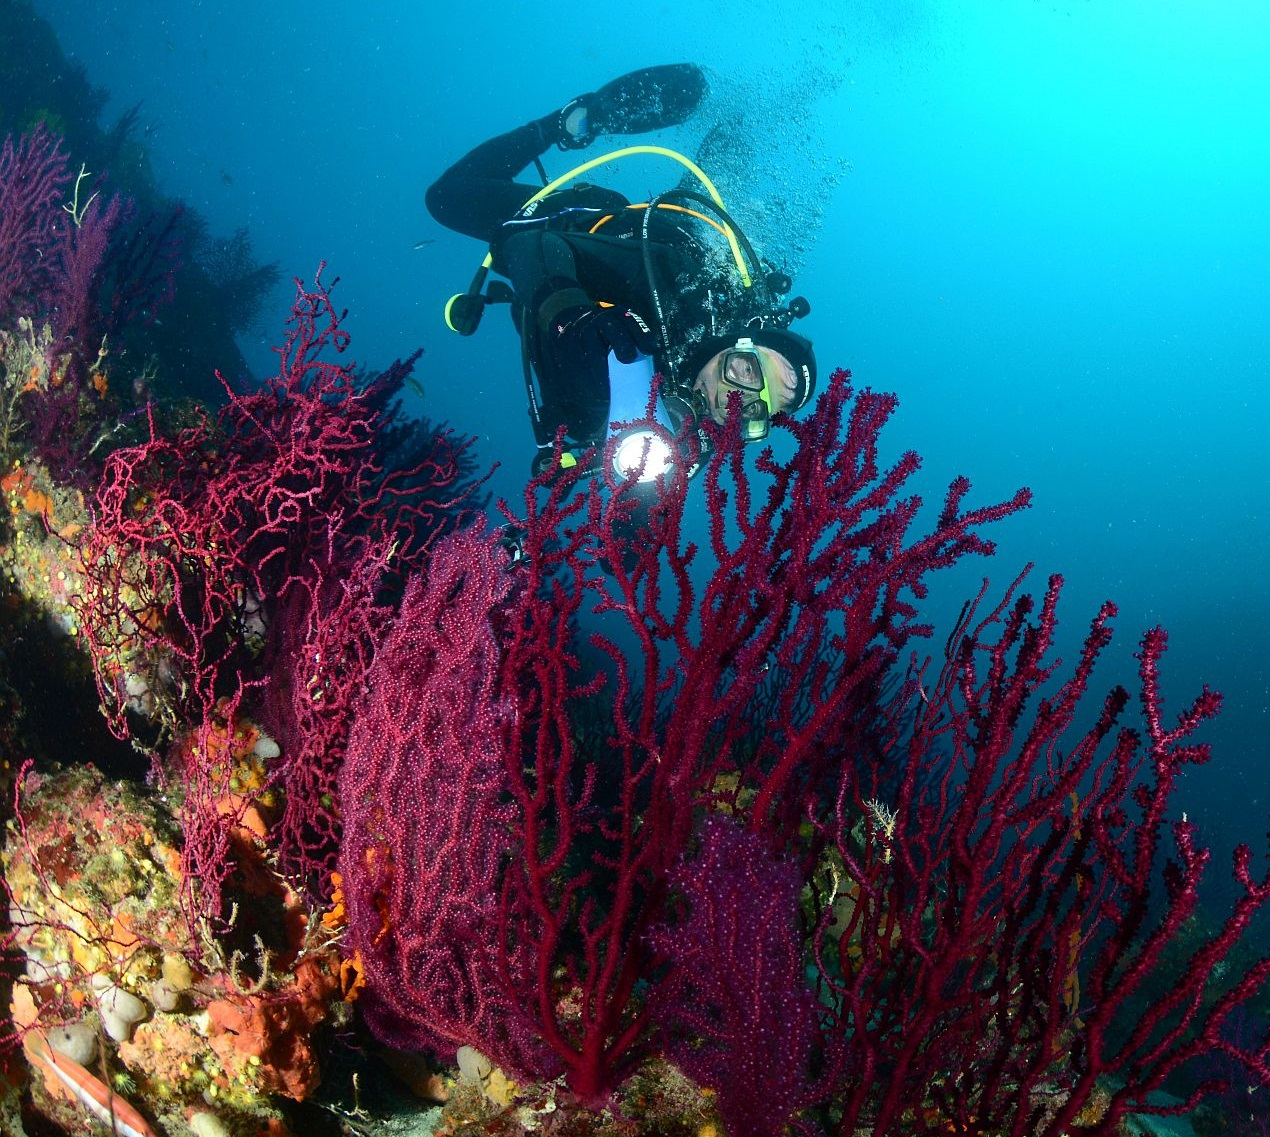 Scuba Diving, diving course, open water, diver course, night diving, Biograd, Croatia